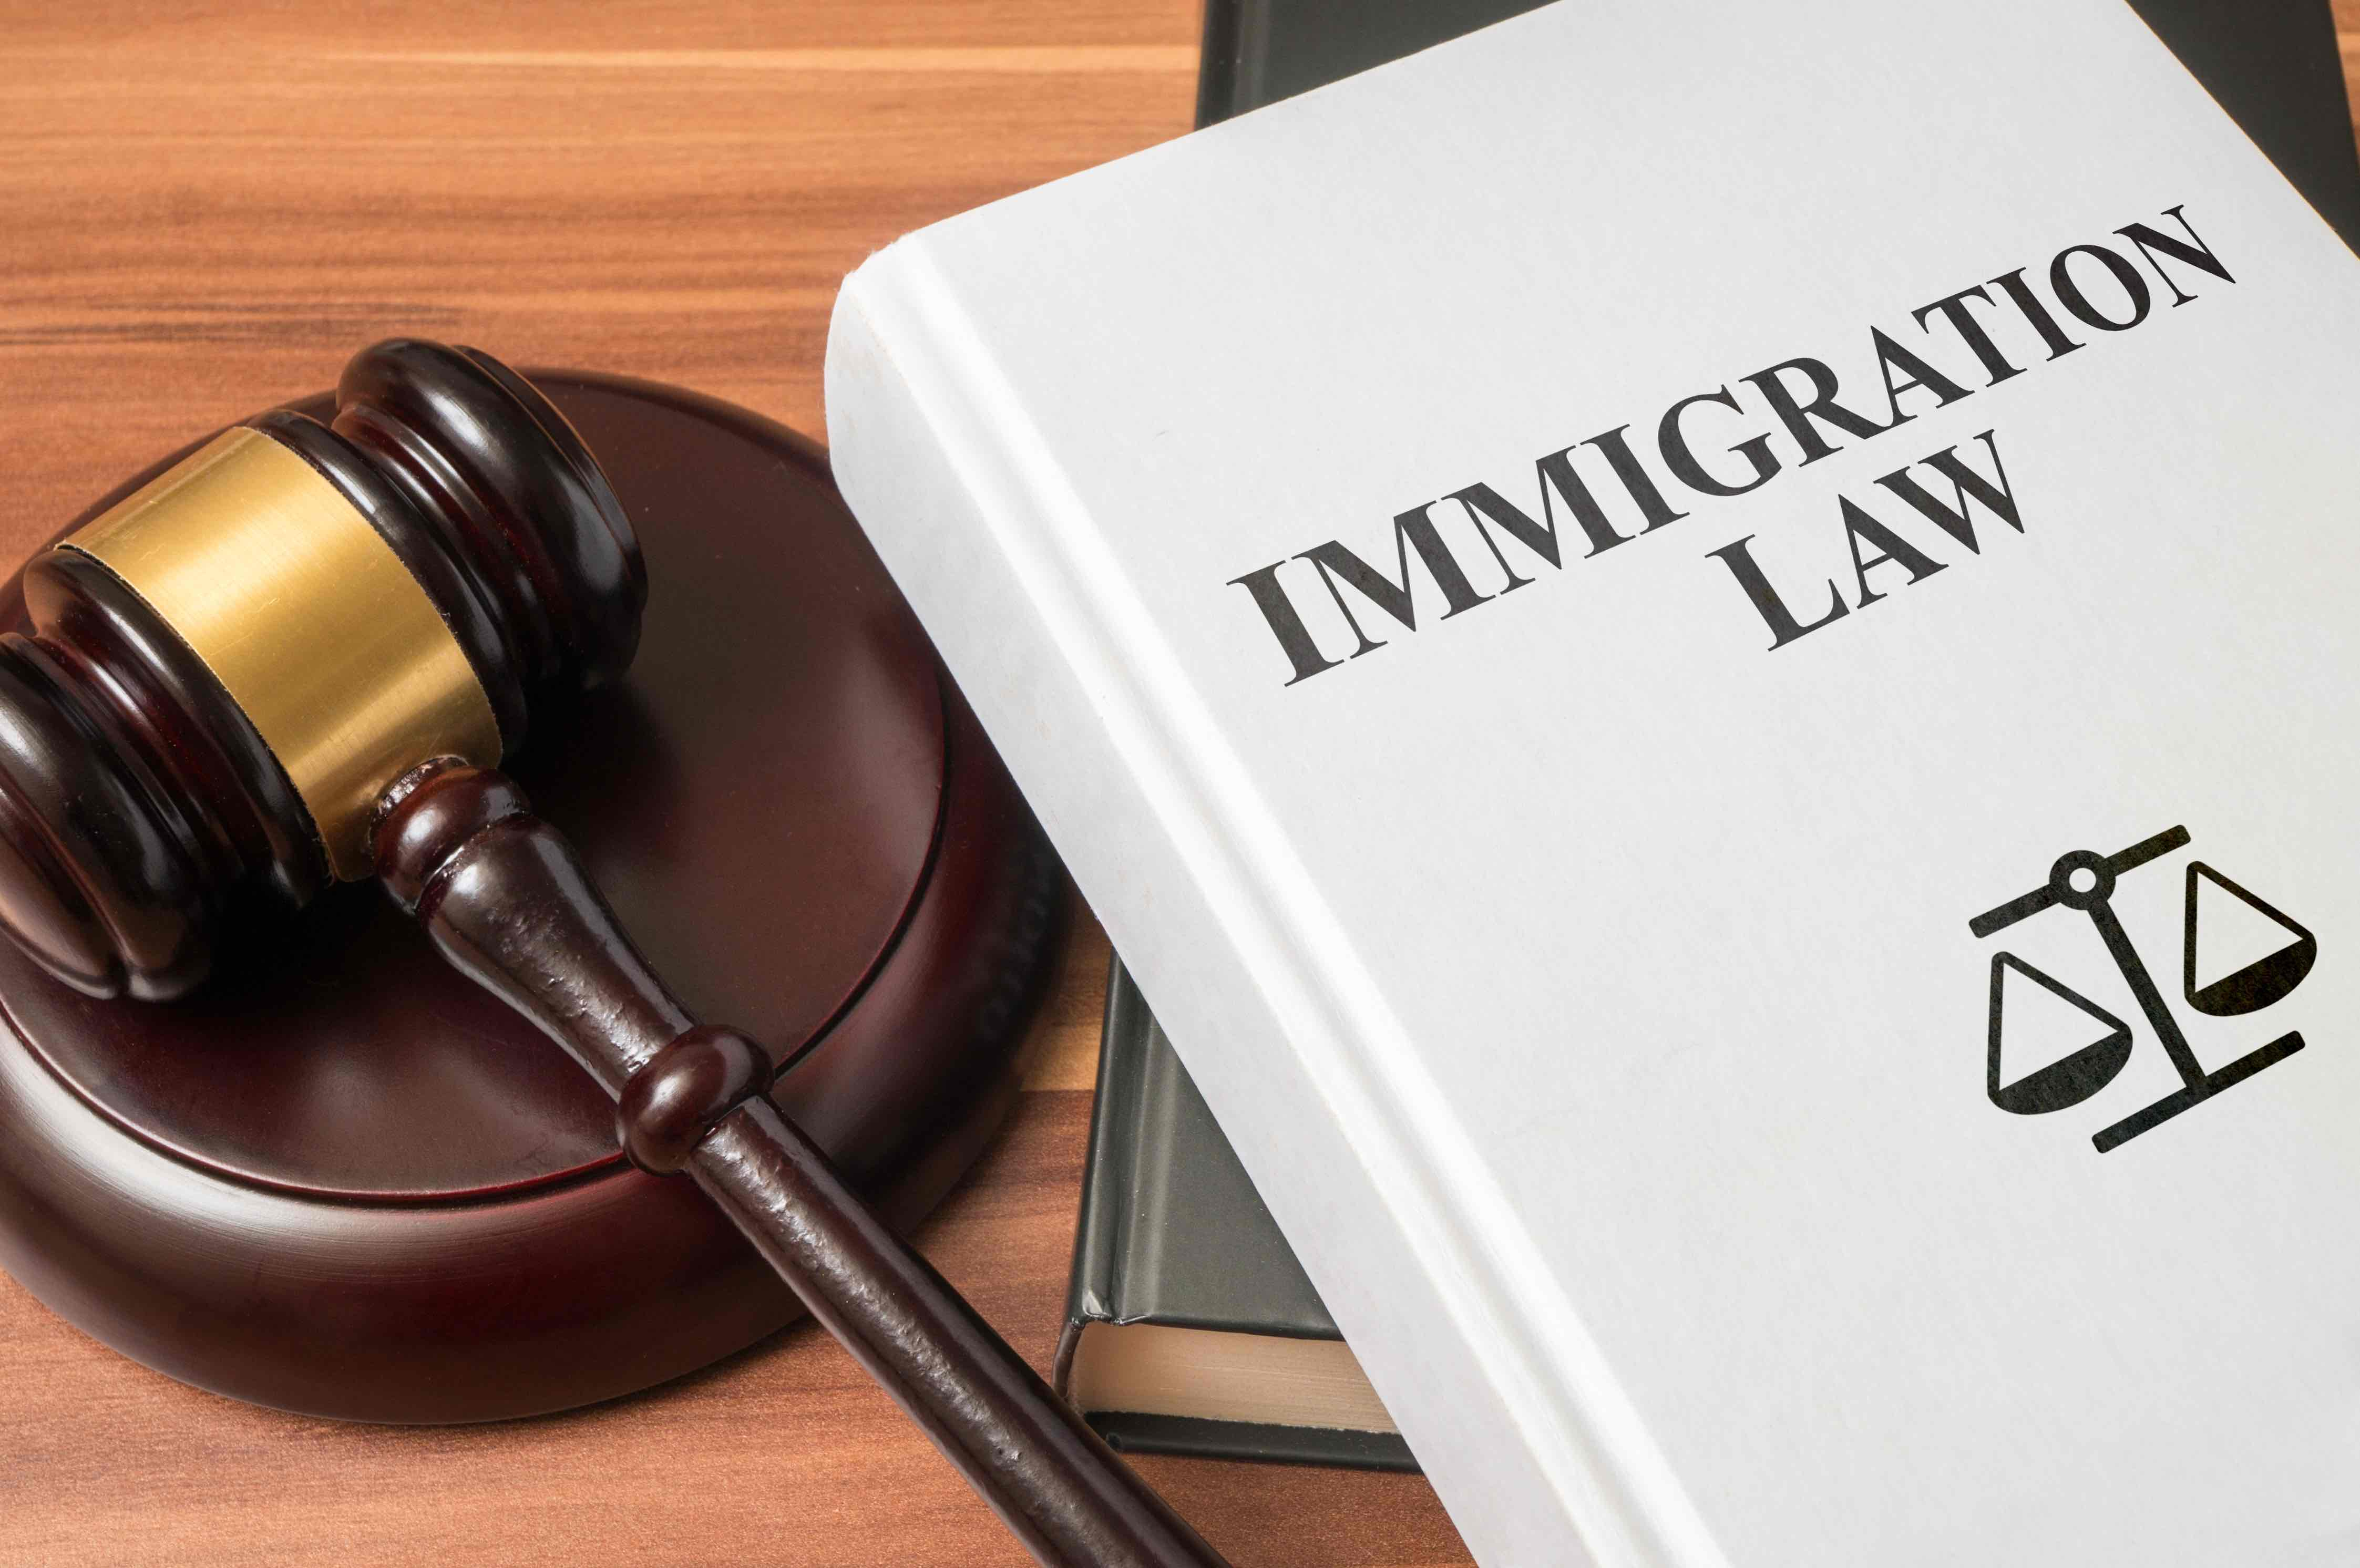 US Citizenship And Immigration History